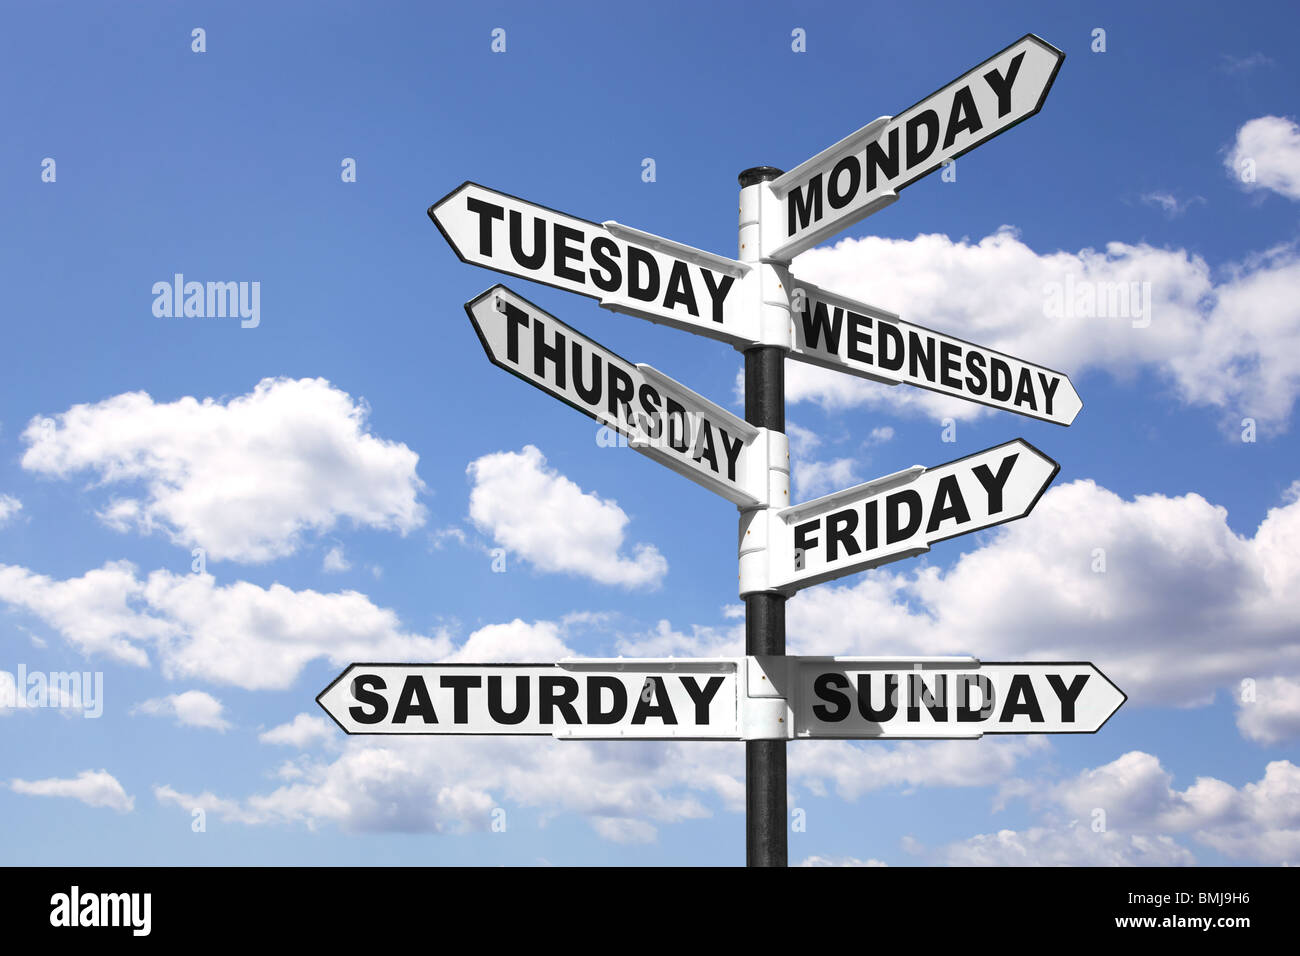 Signpost showing the seven days of the week - Stock Image